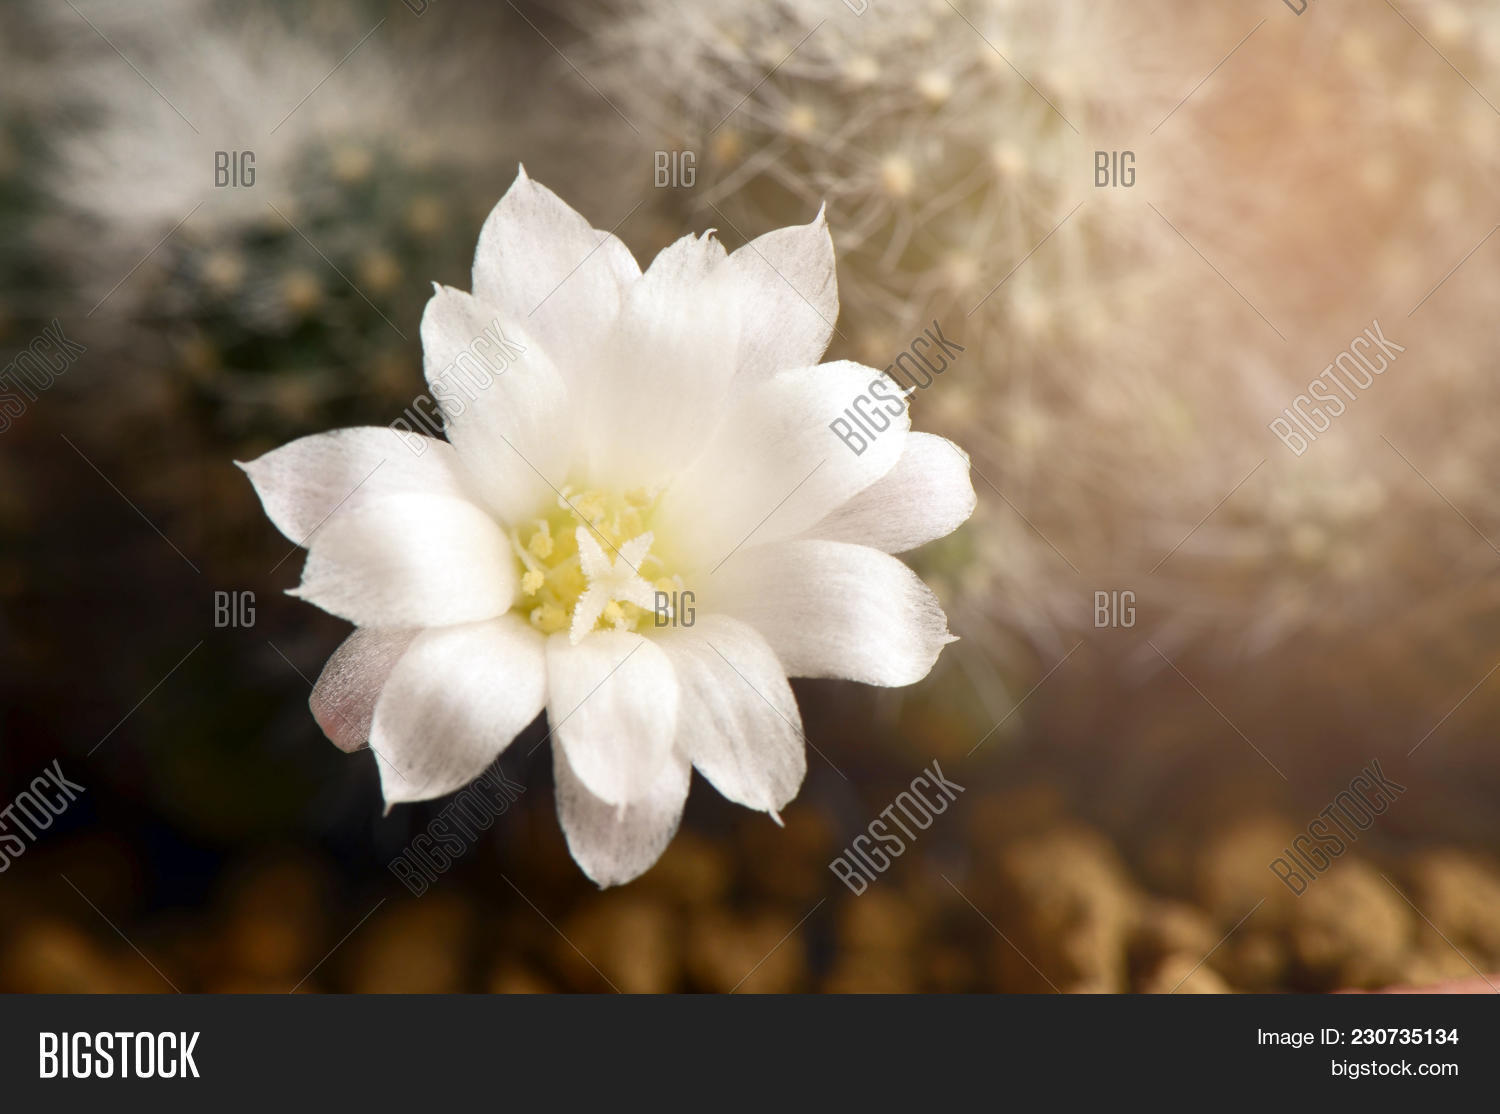 White Cactus Flower Image Photo Free Trial Bigstock